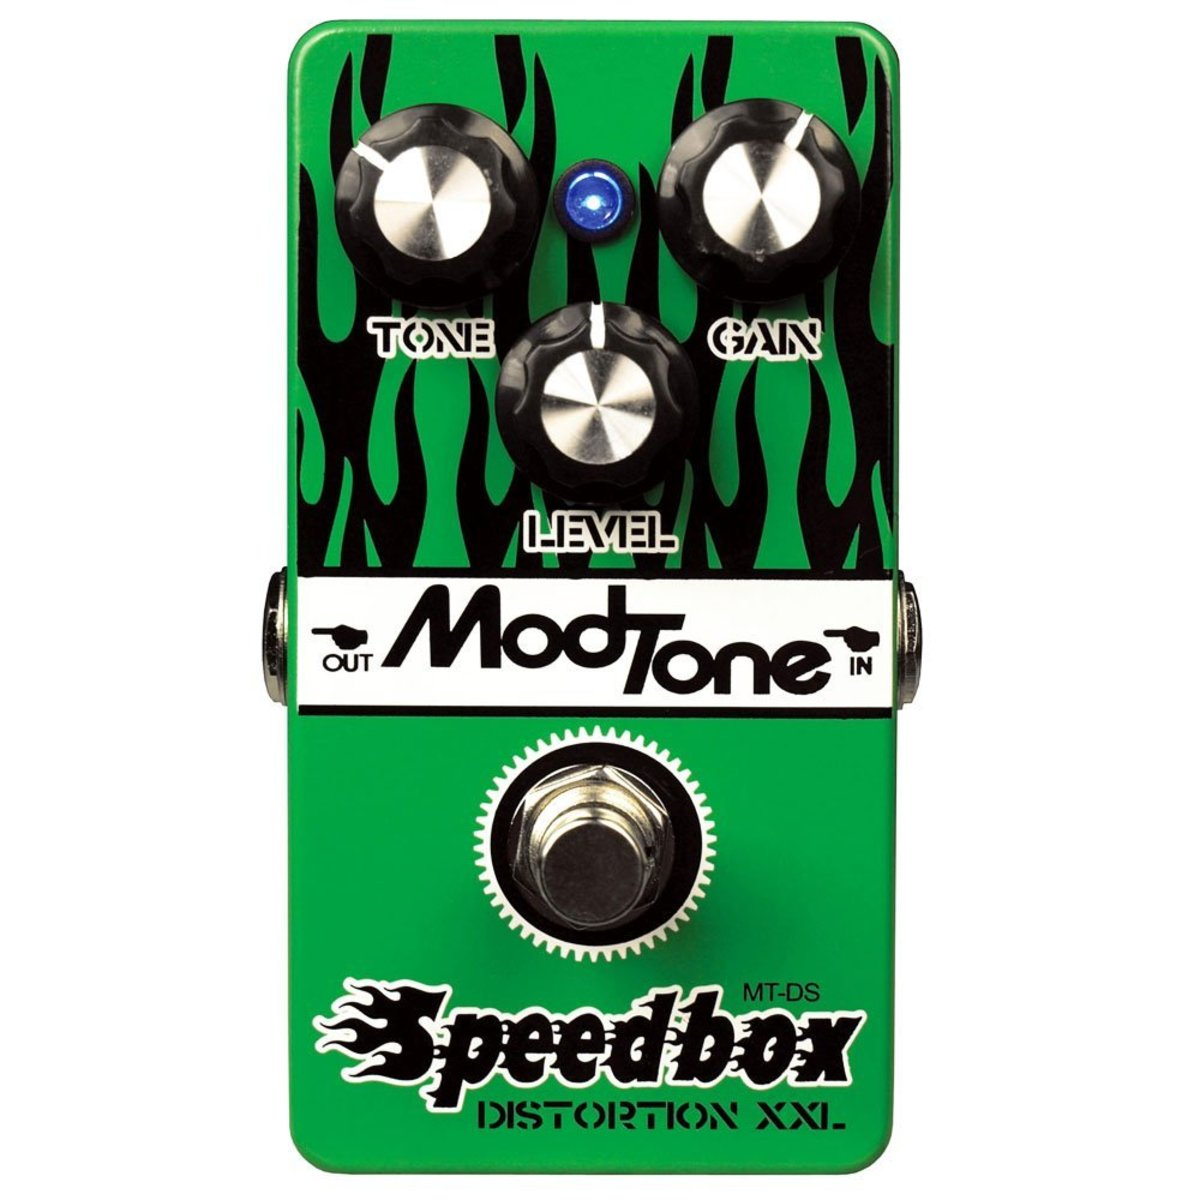 The Modtone MT-DS doesn't have much range, but does what it does well.